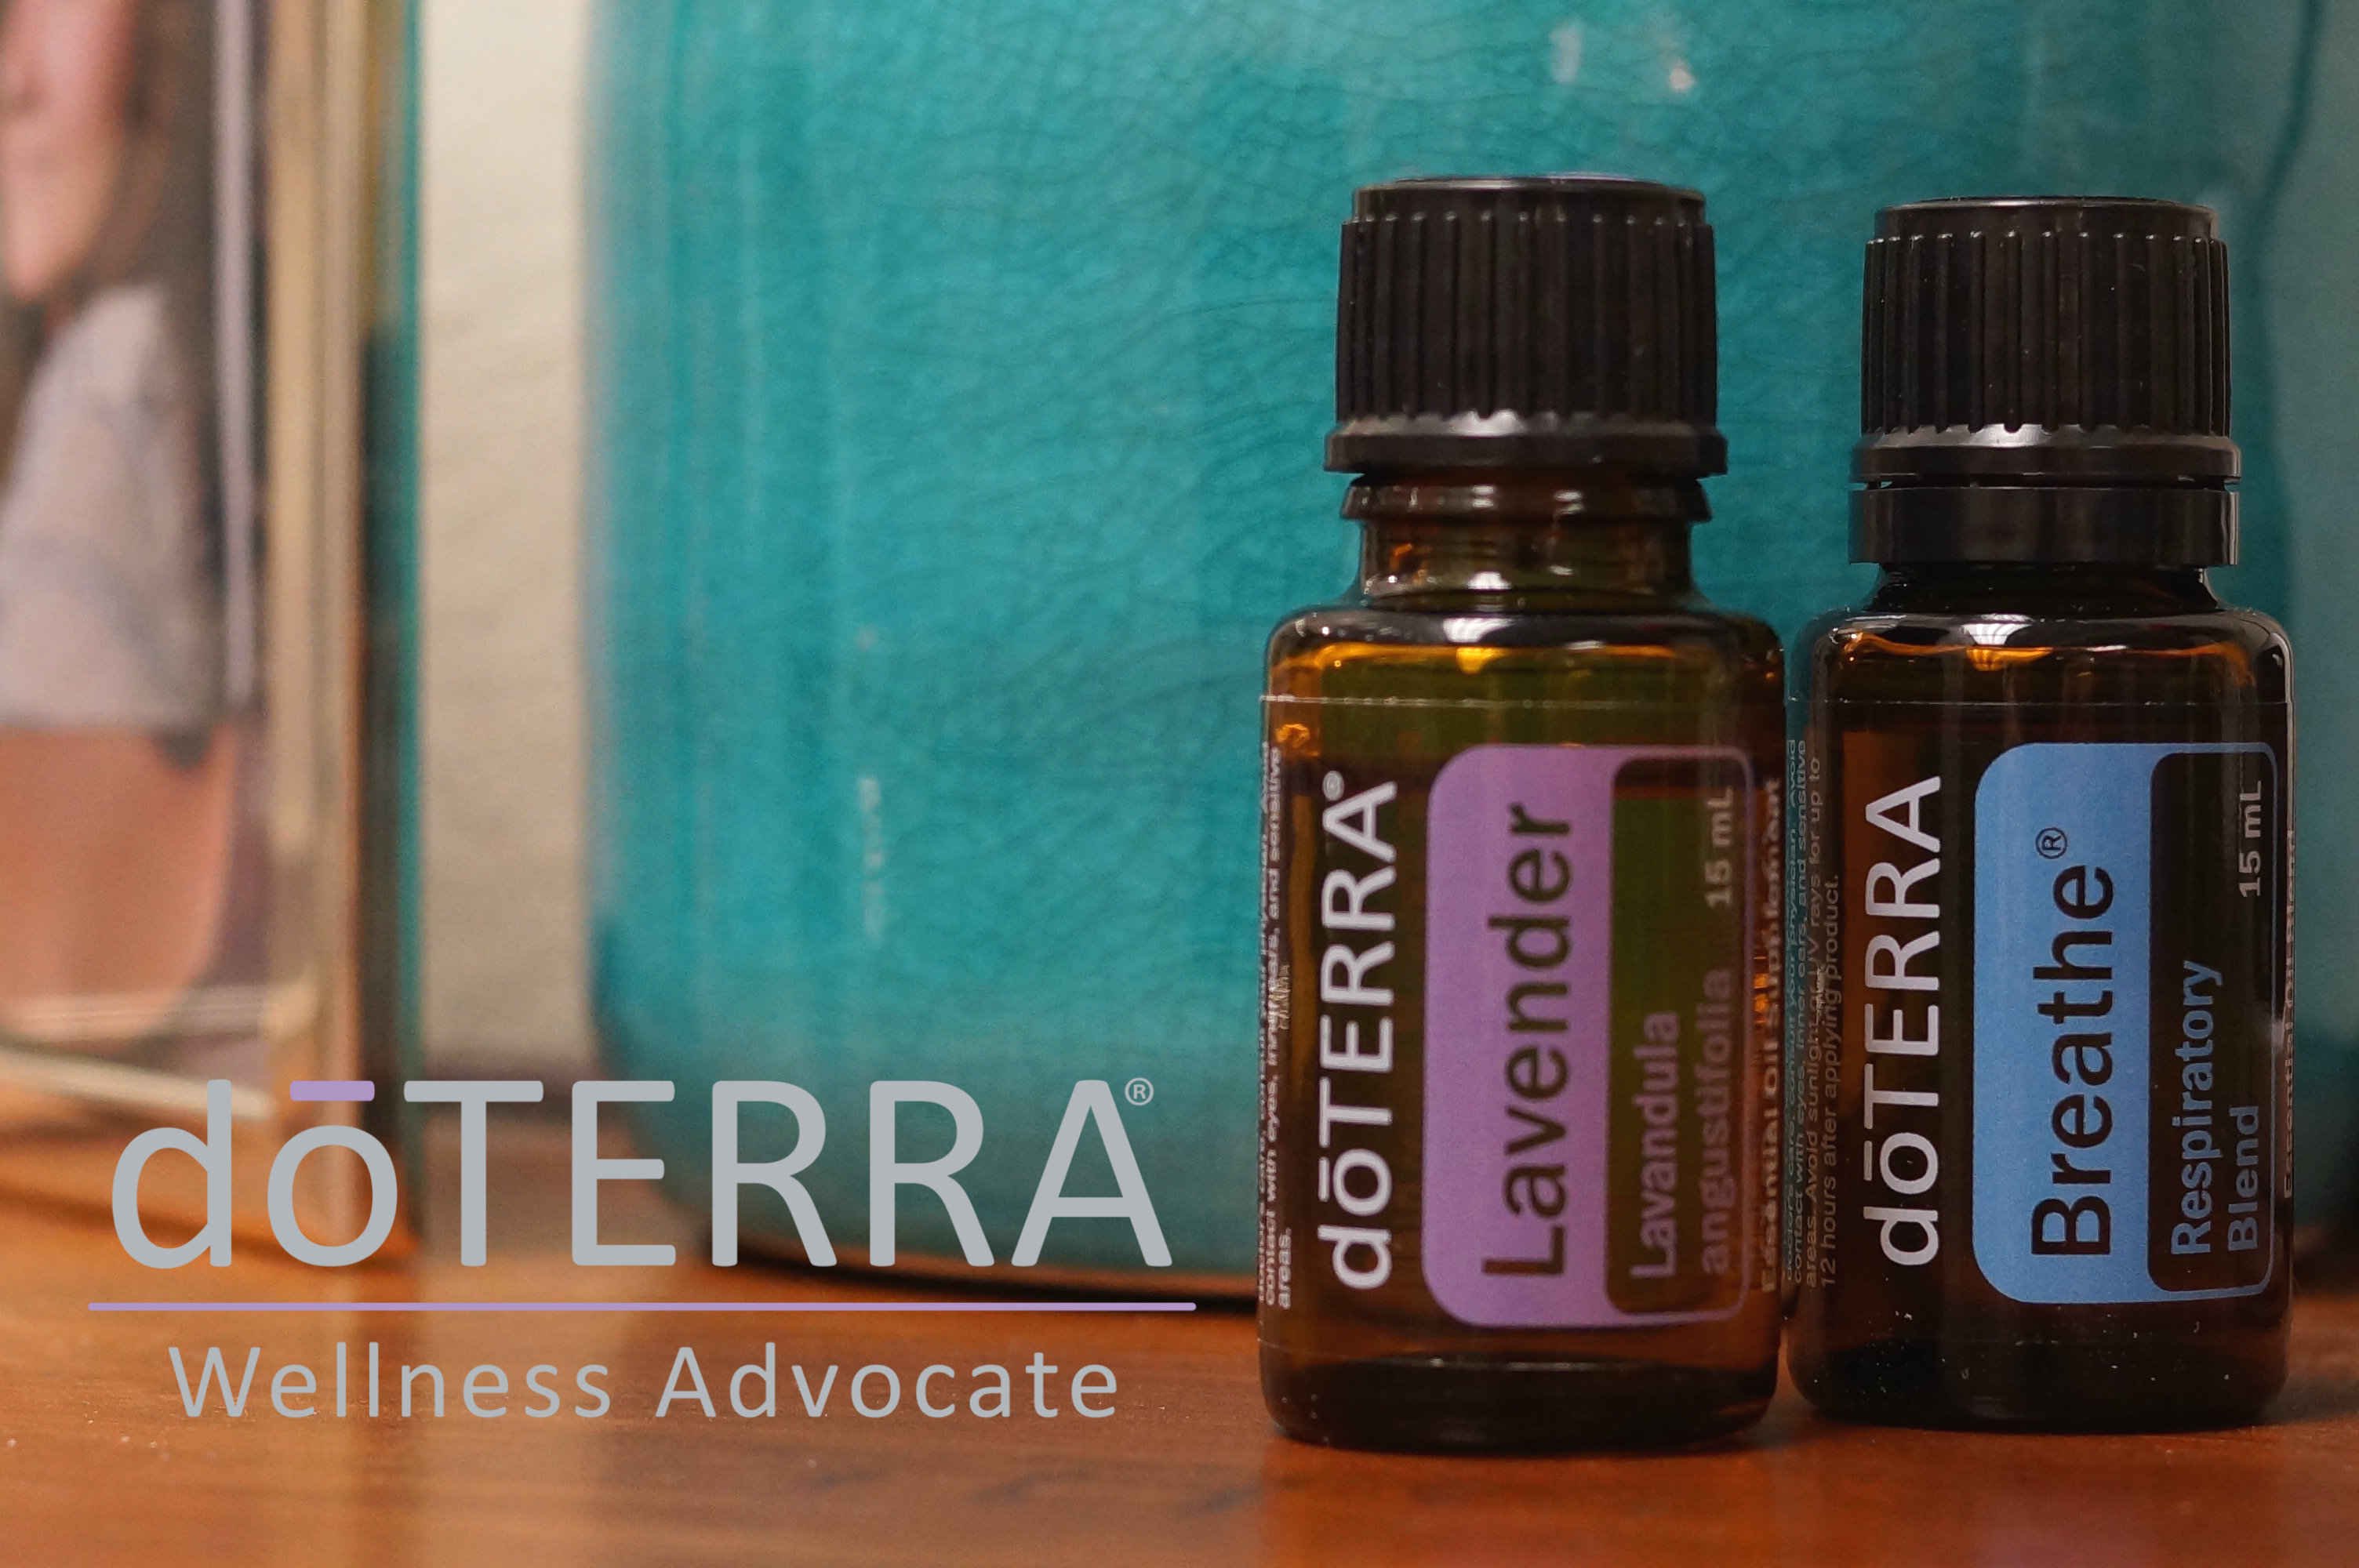 A link for DoTerra essential oils which are used during massage therapy services and reiki at 3Bs Massage and Bodywork in Appleton, Wisconsin